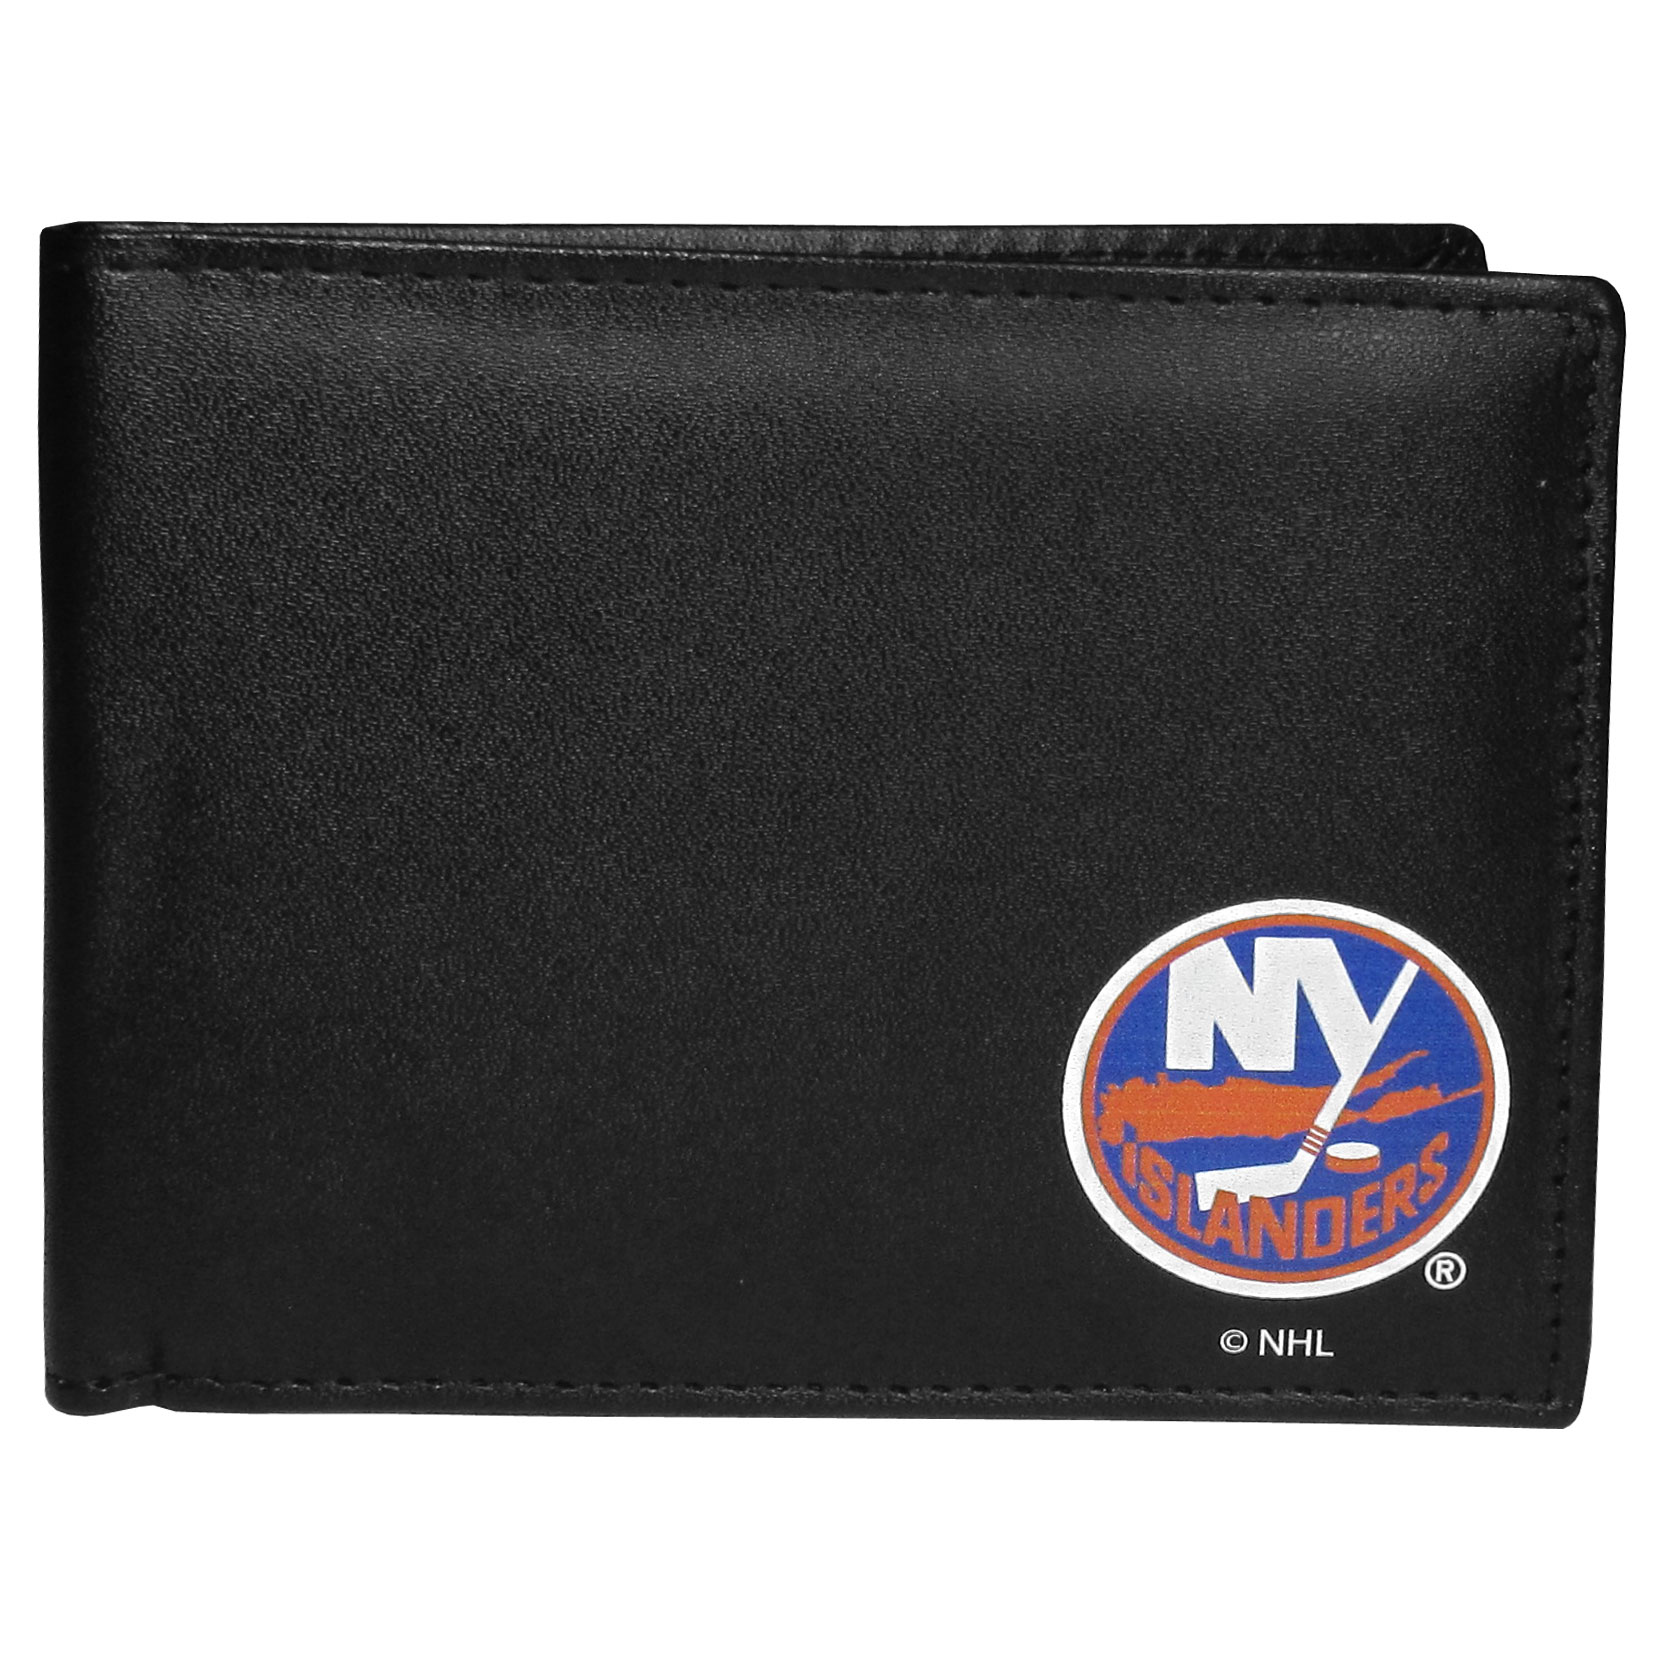 New York Islanders Bi-fold Wallet - Sports fans do not have to sacrifice style with this classic bi-fold wallet that sports a New York Islanders emblem. This men's fashion accessory has a leather grain look and expert craftmanship for a quality wallet at a great price. The wallet features inner credit card slots, windowed ID slot and a large billfold pocket. The front of the wallet features a printed team logo.